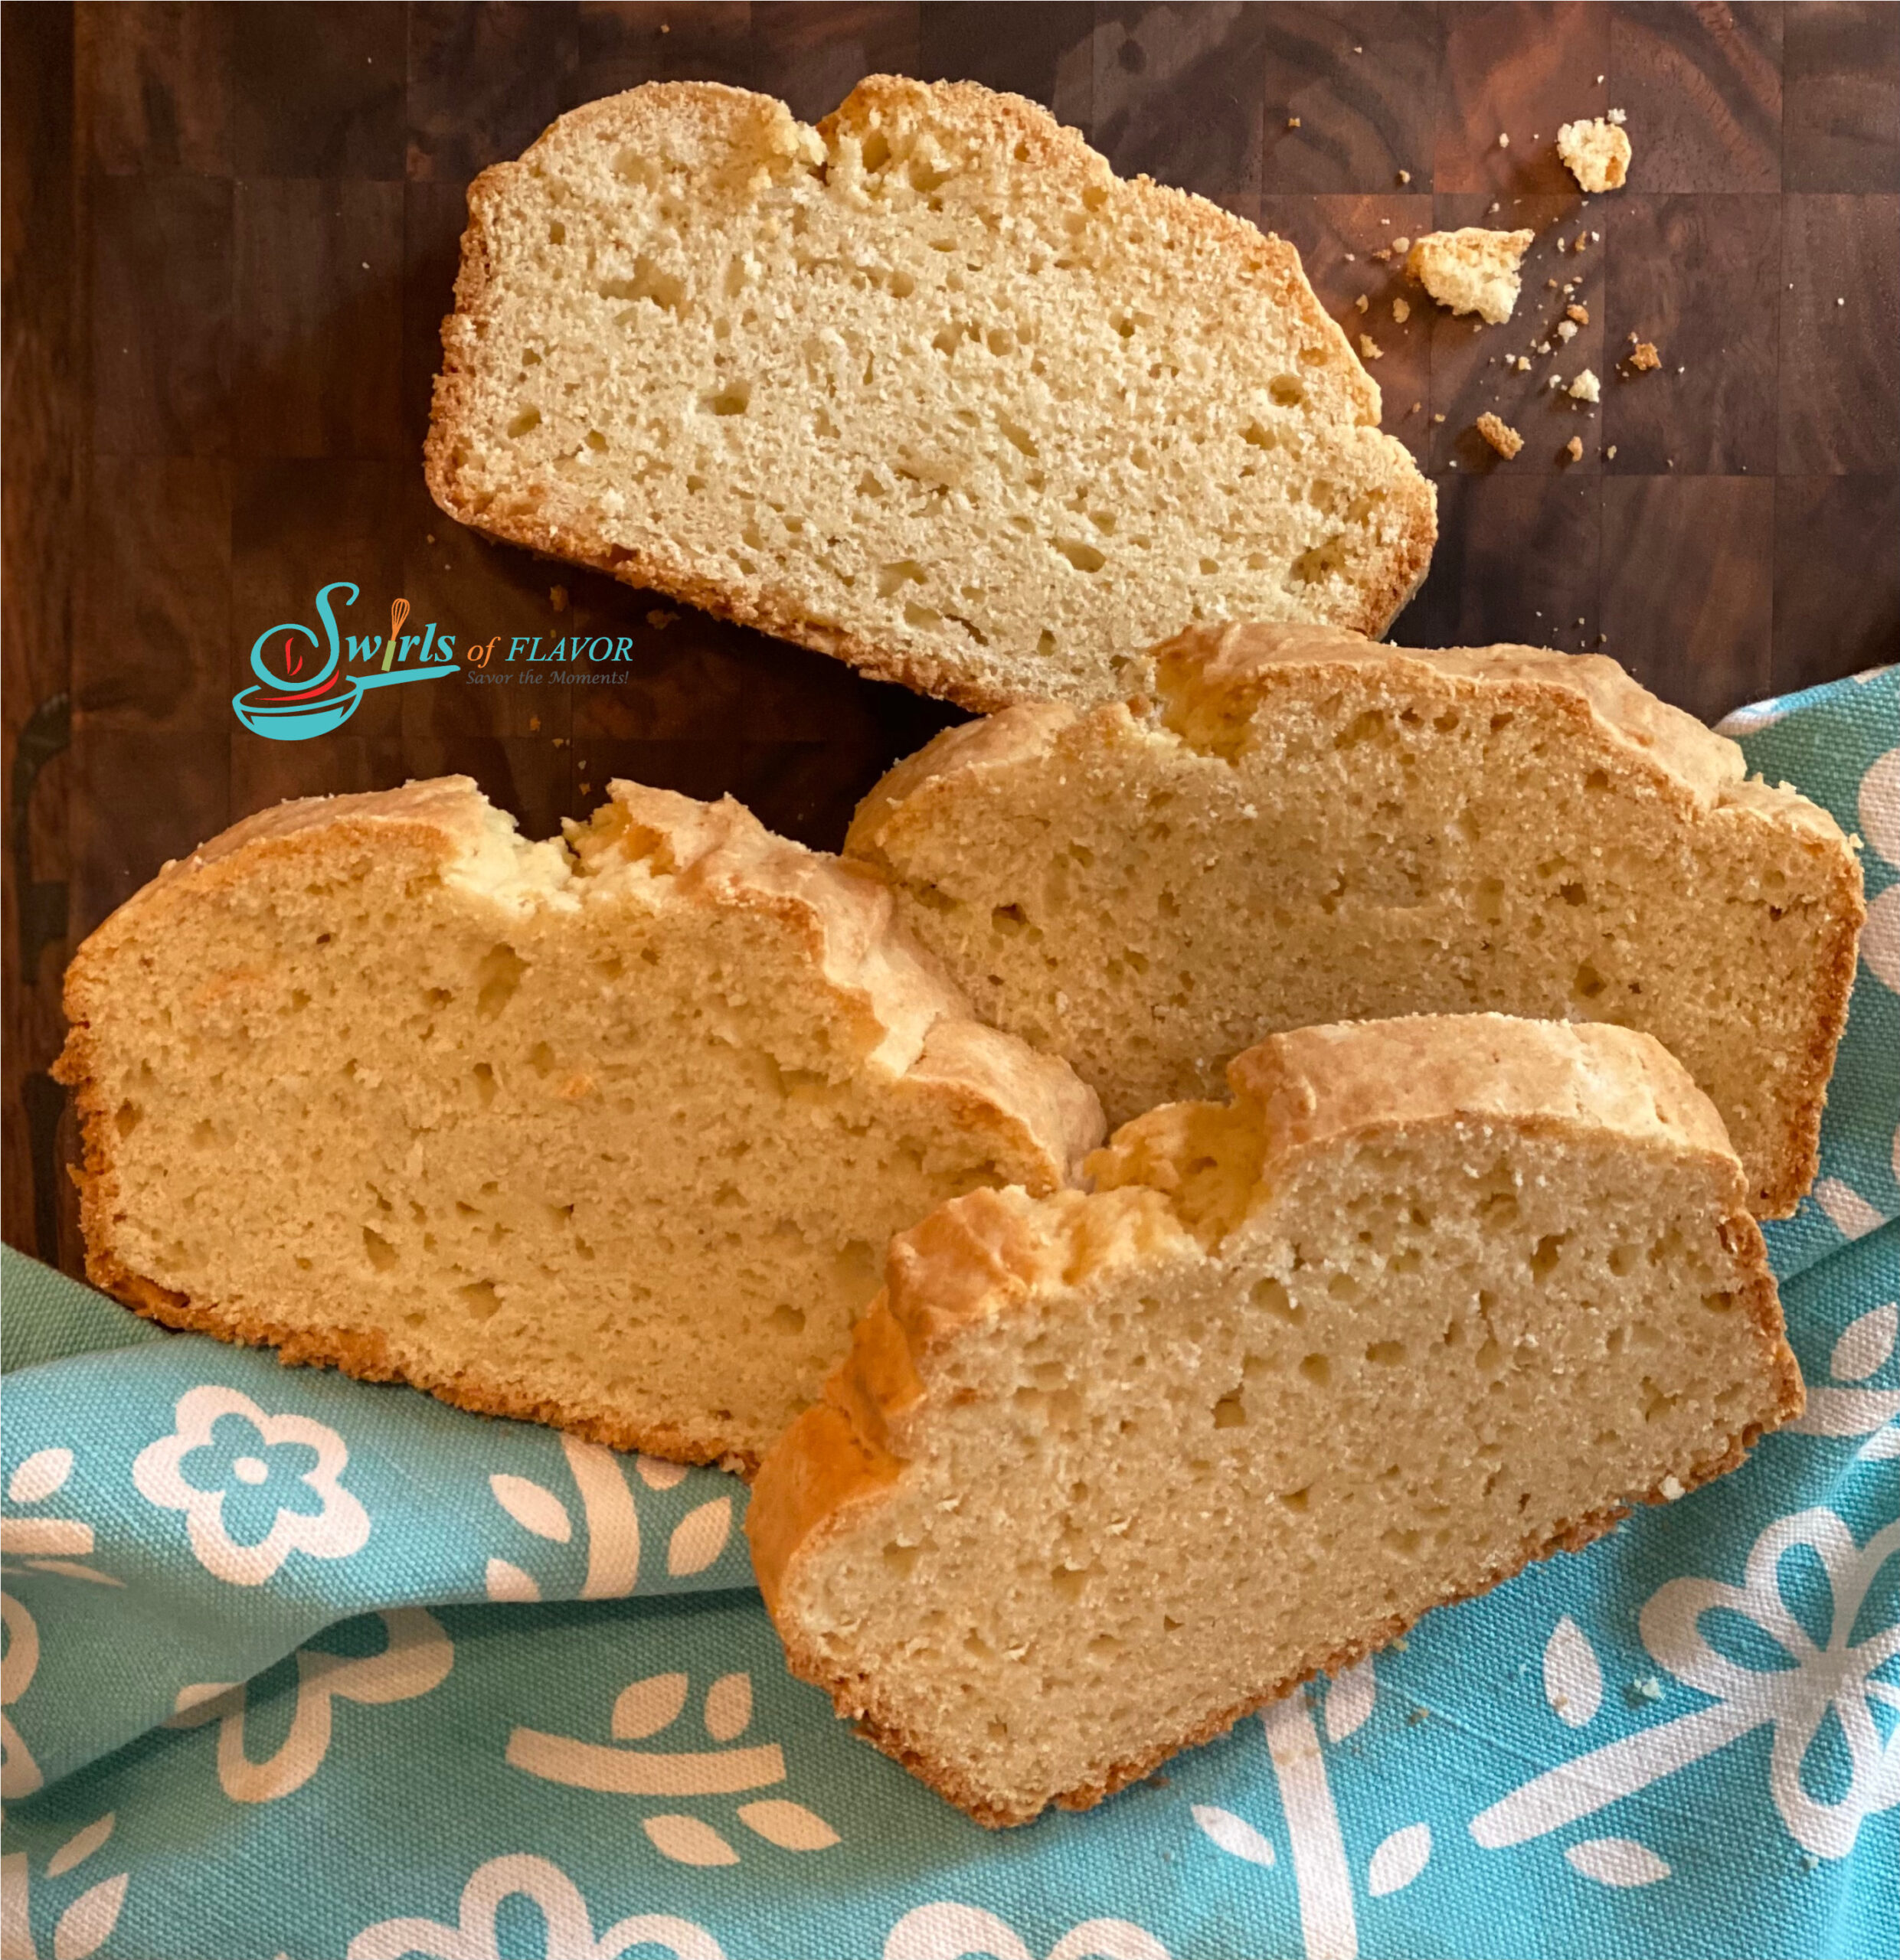 slices of homemade bread with blue napkin